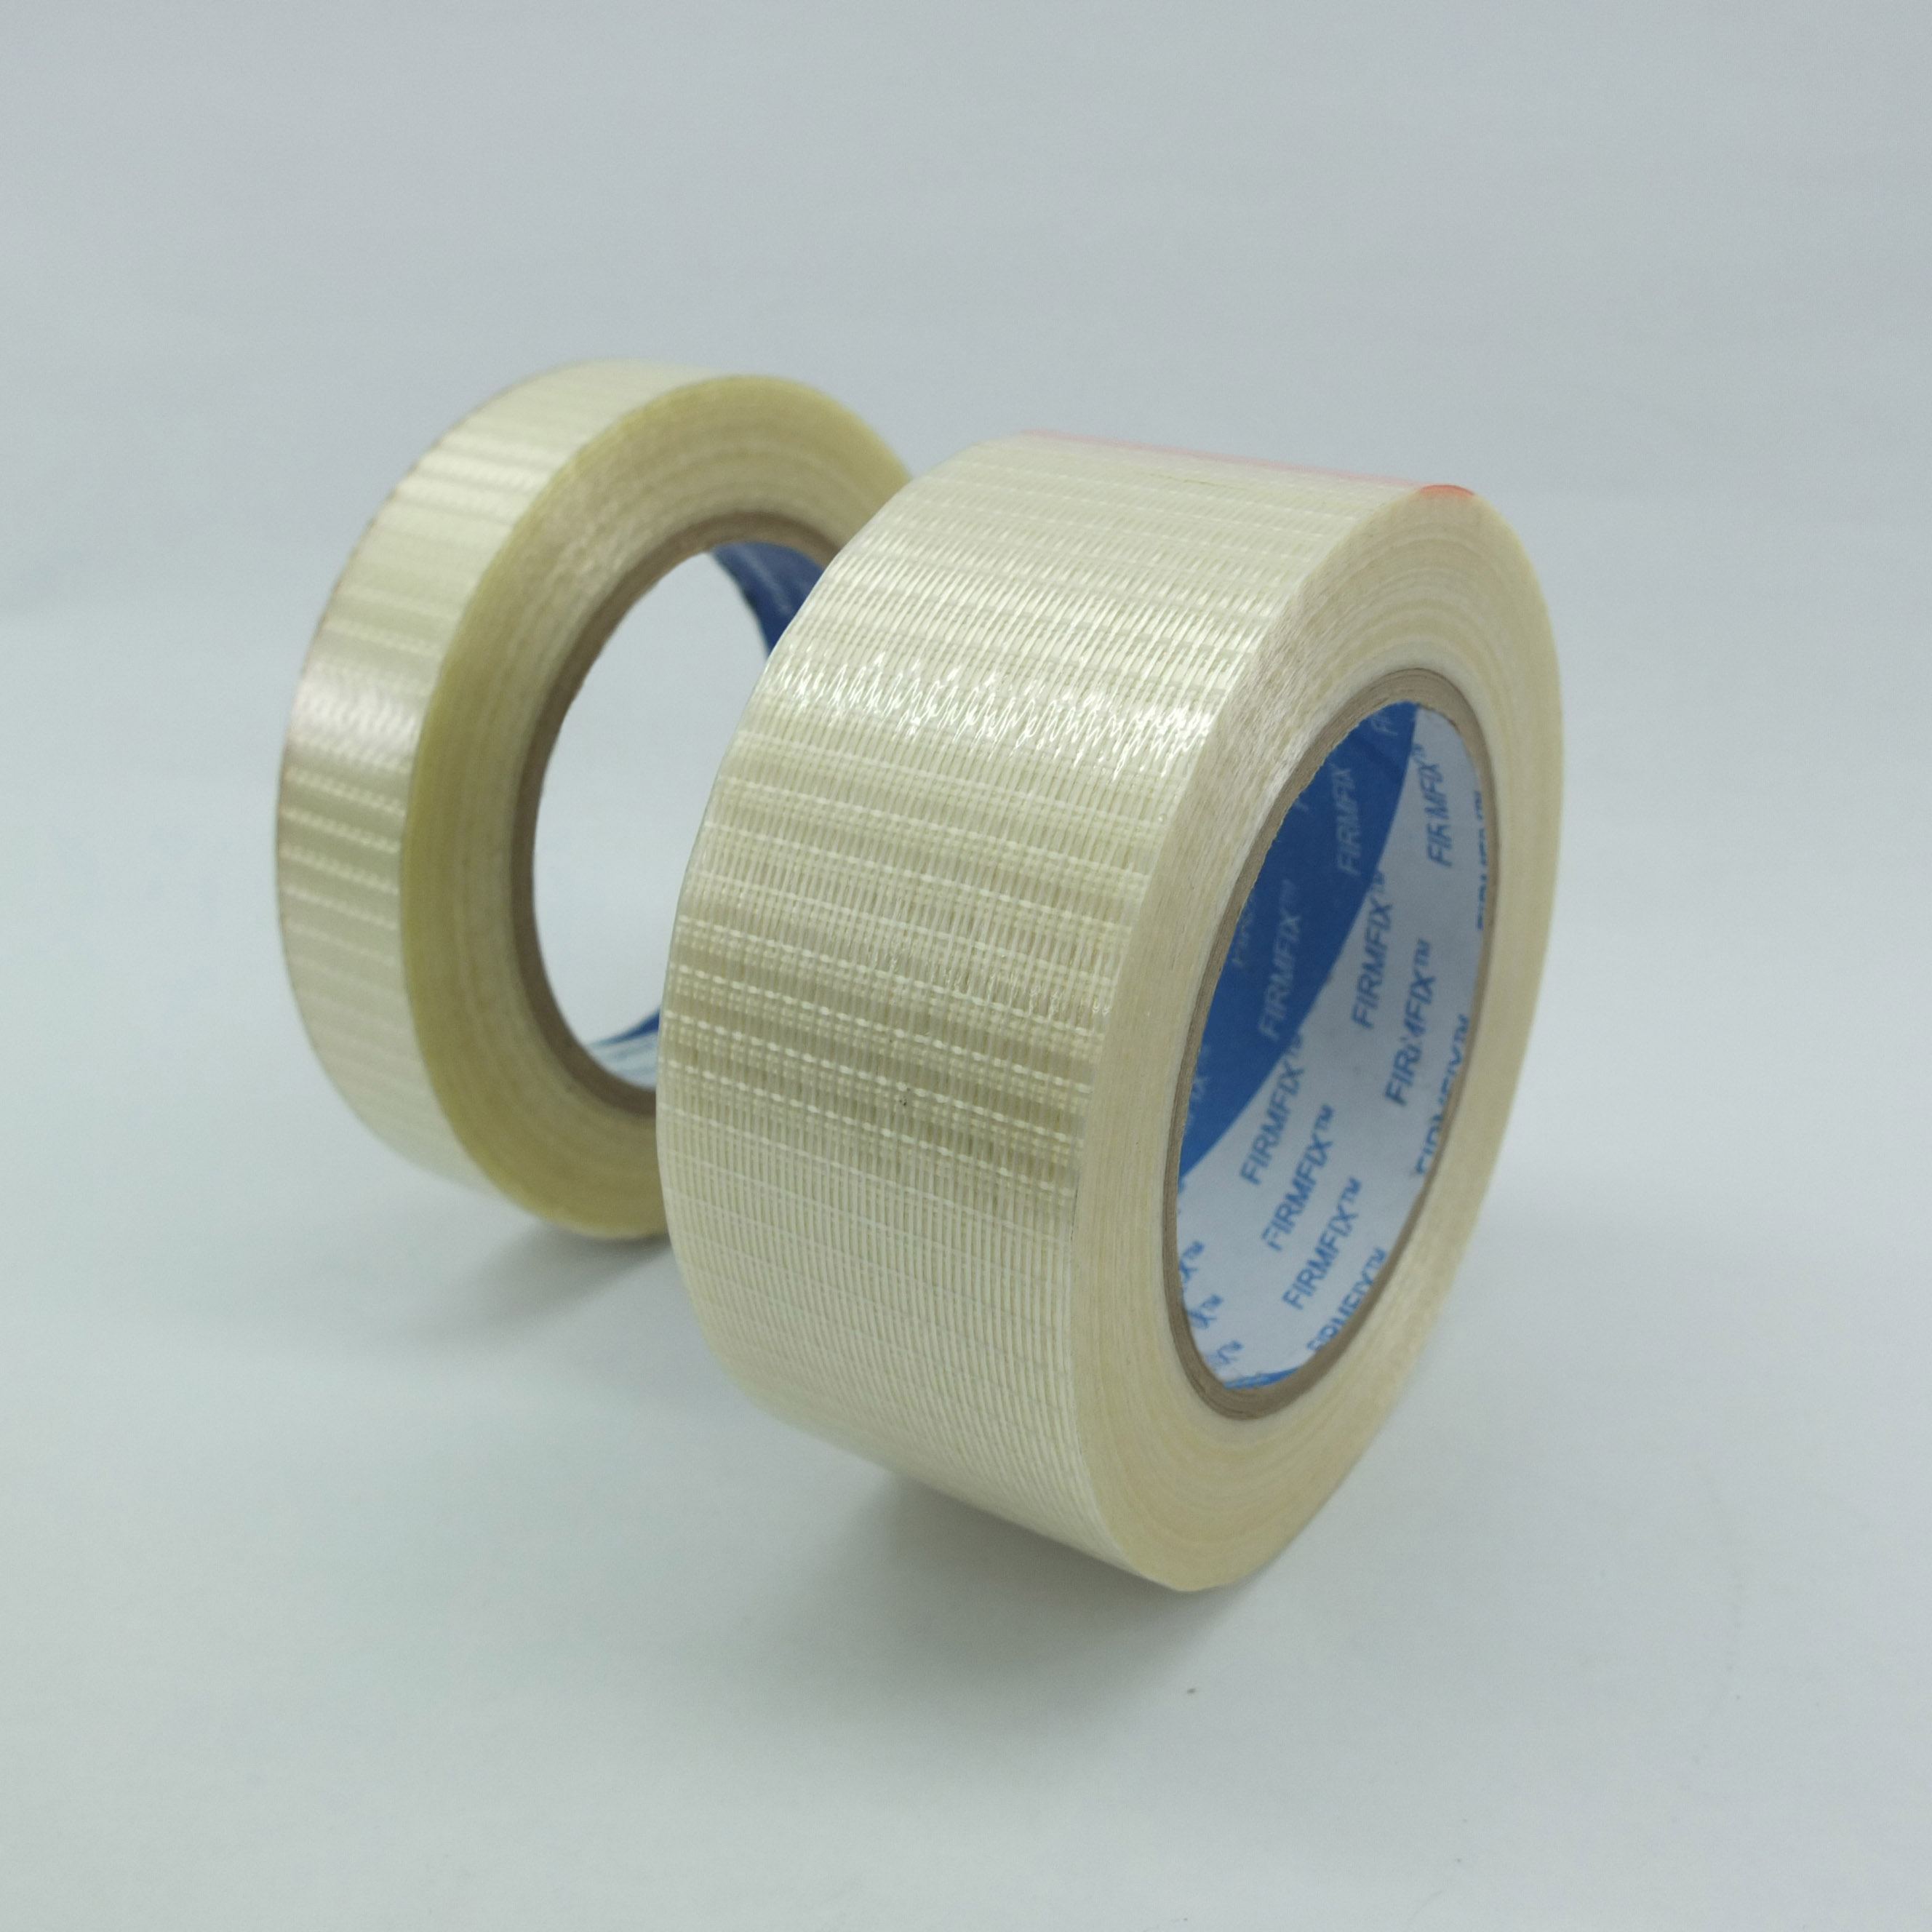 FIRMFIX Filament Tapes